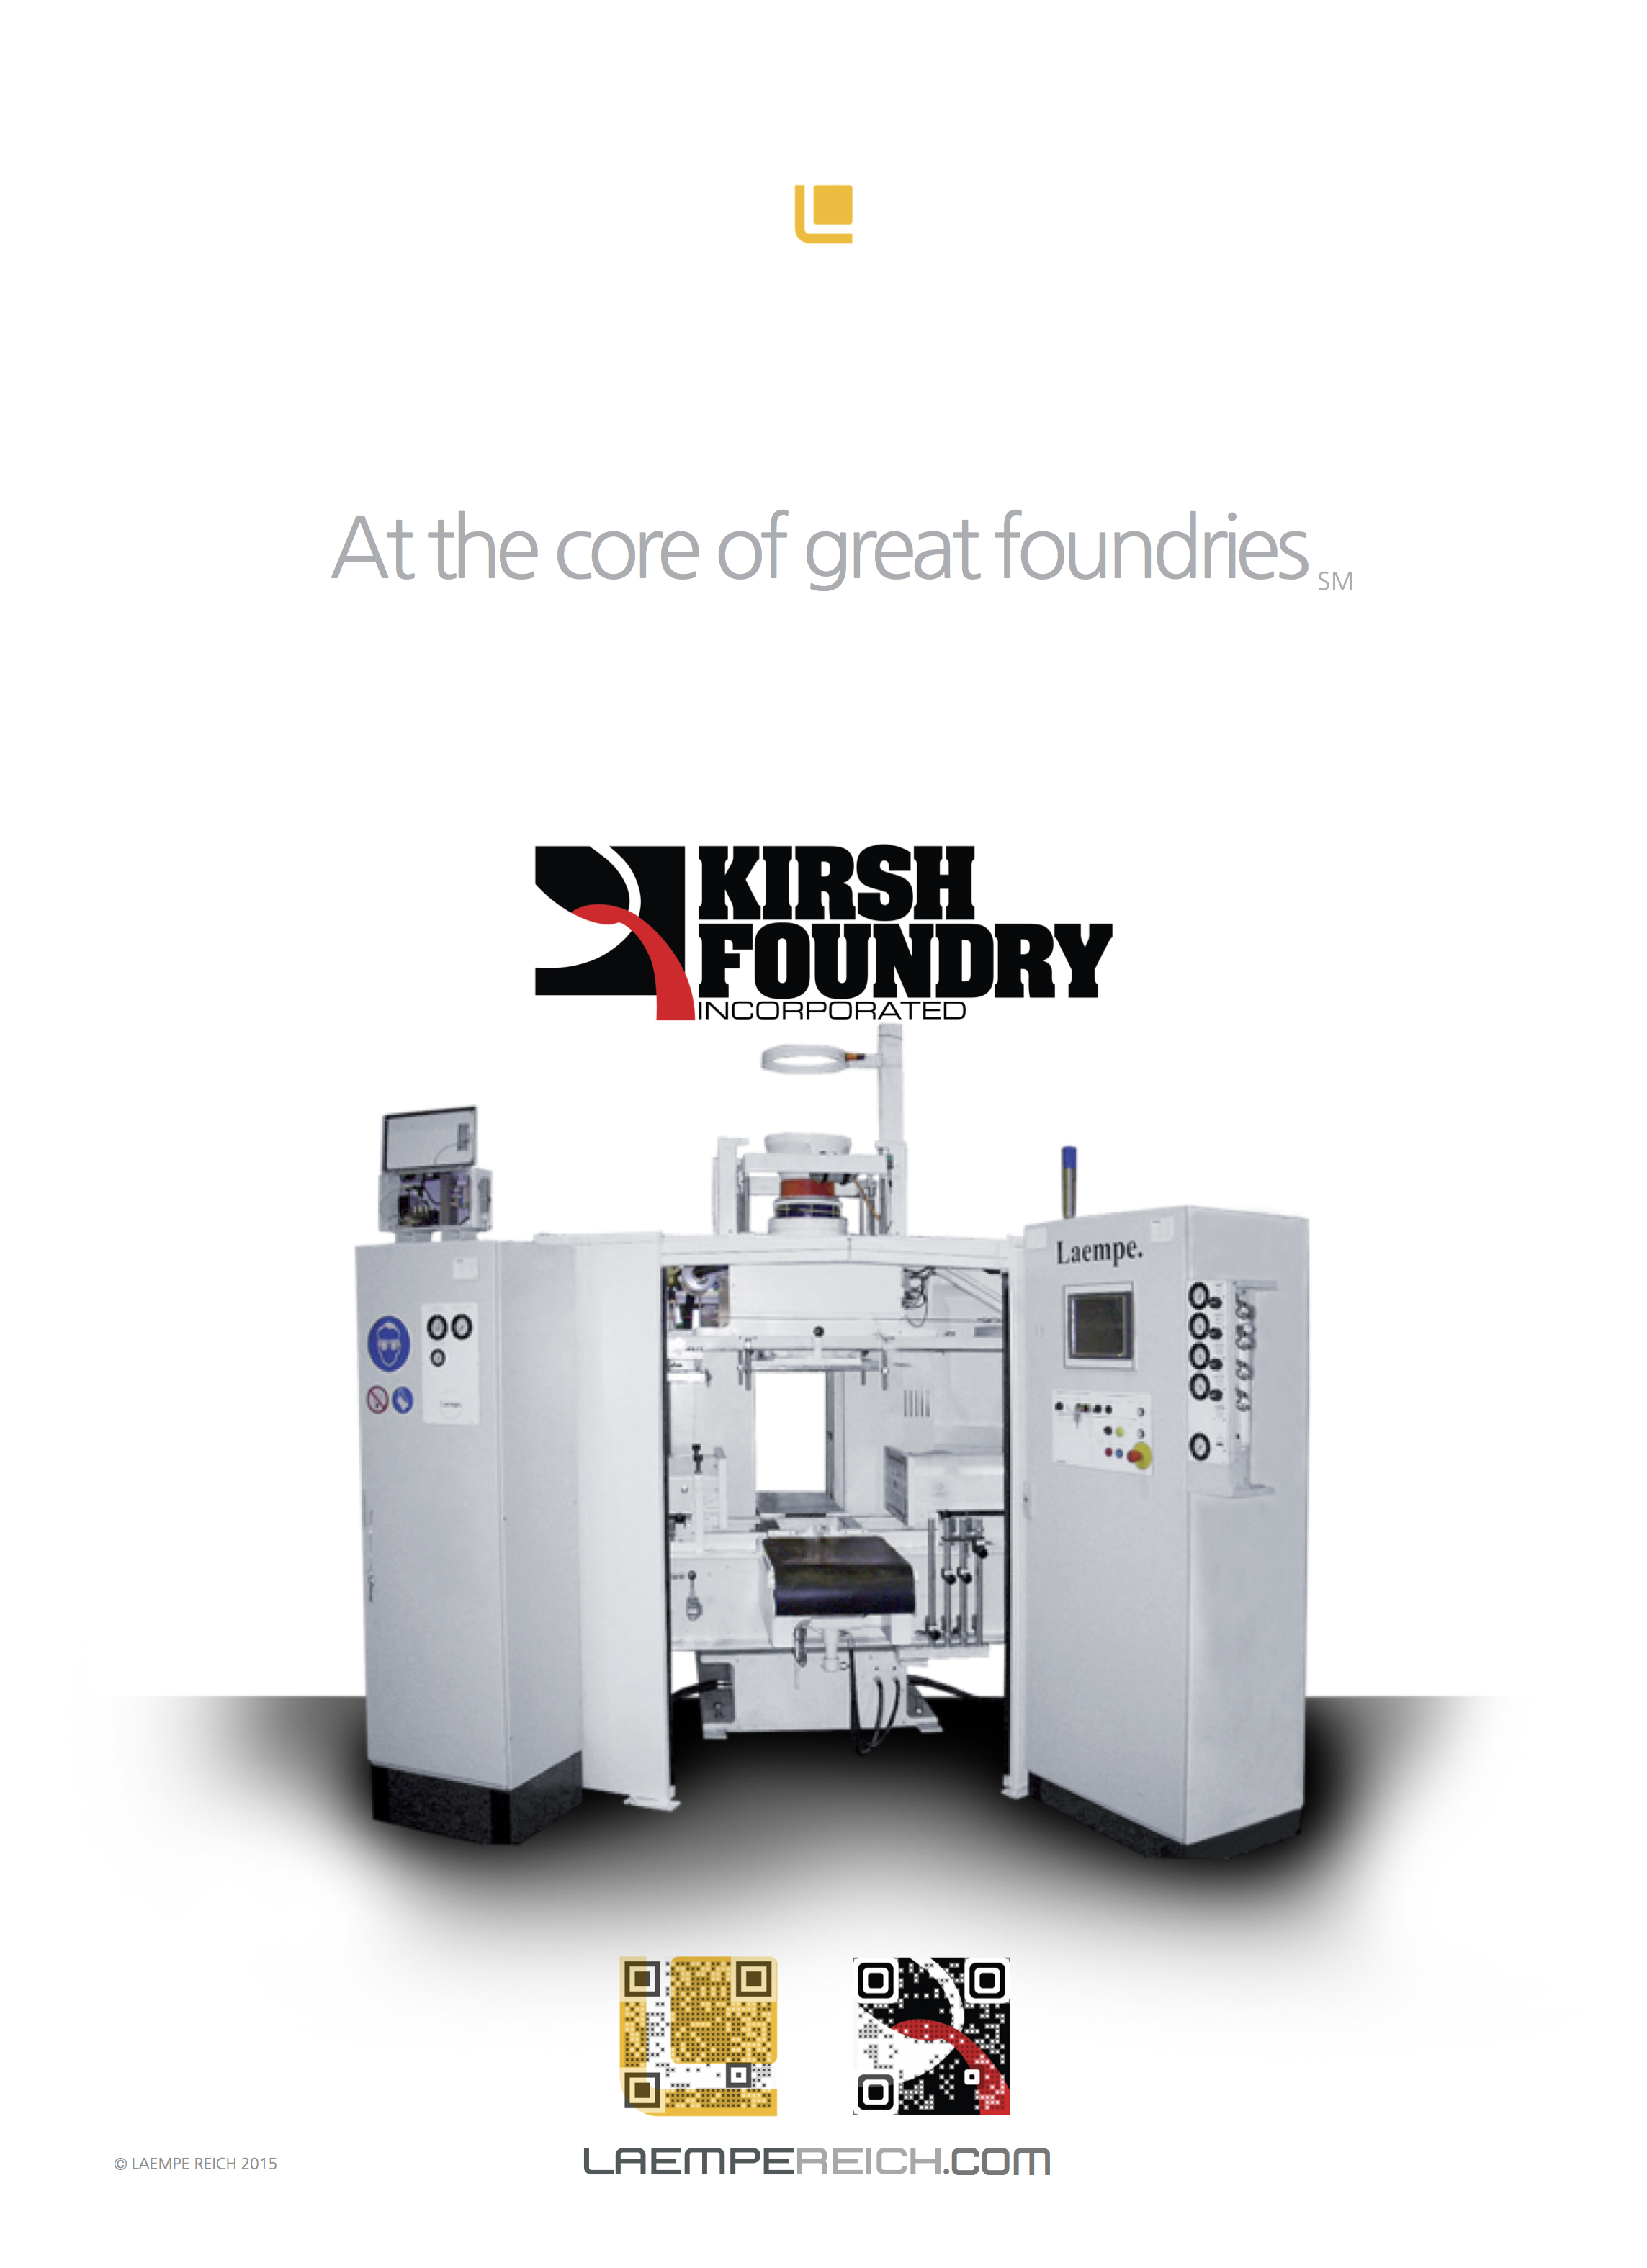 Kirsh - At the Core of Great Foundries 2015.jpg